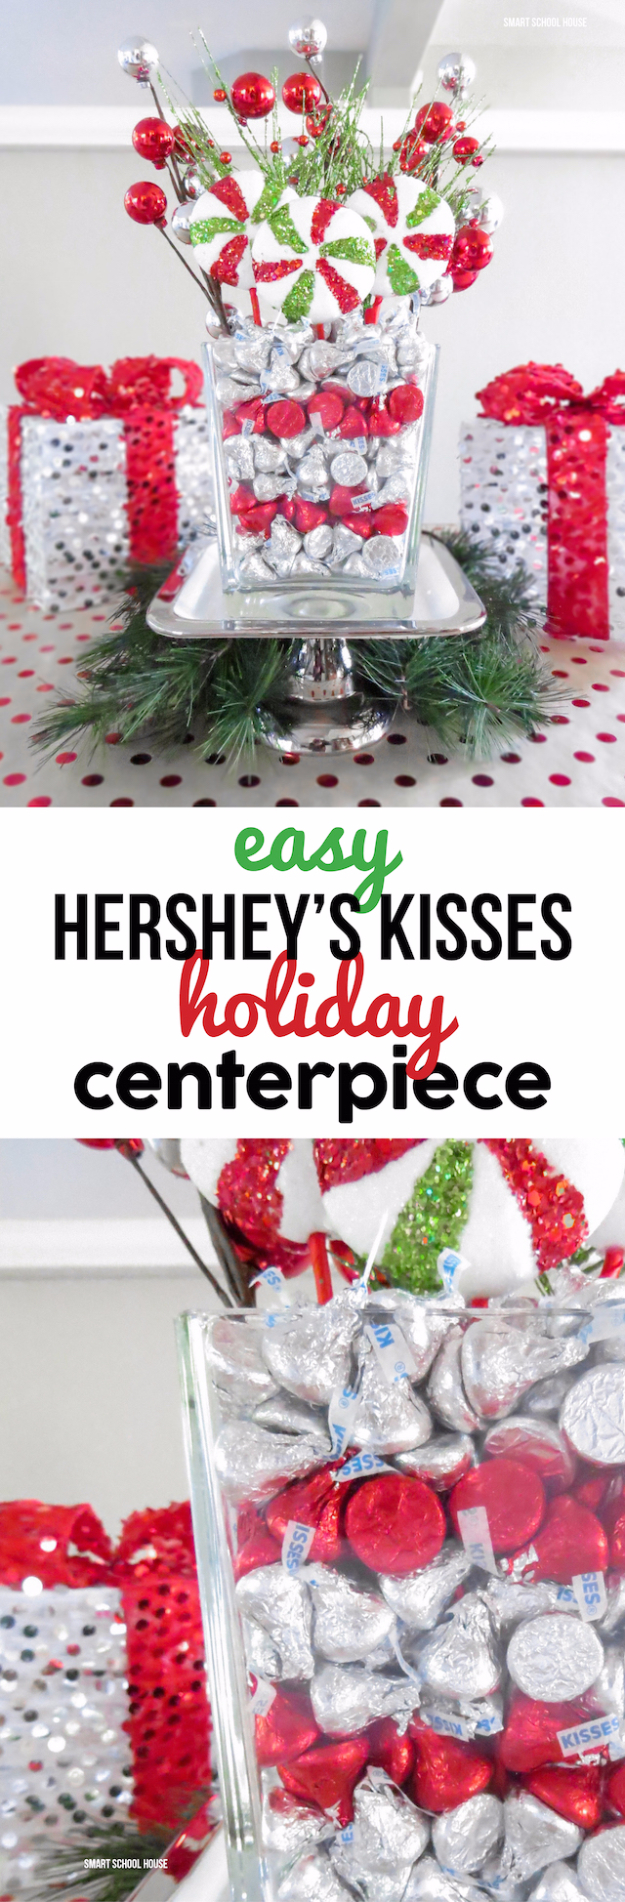 15 Glamorous DIY Christmas Centerpiece Ideas Youll Want To Make Right Away